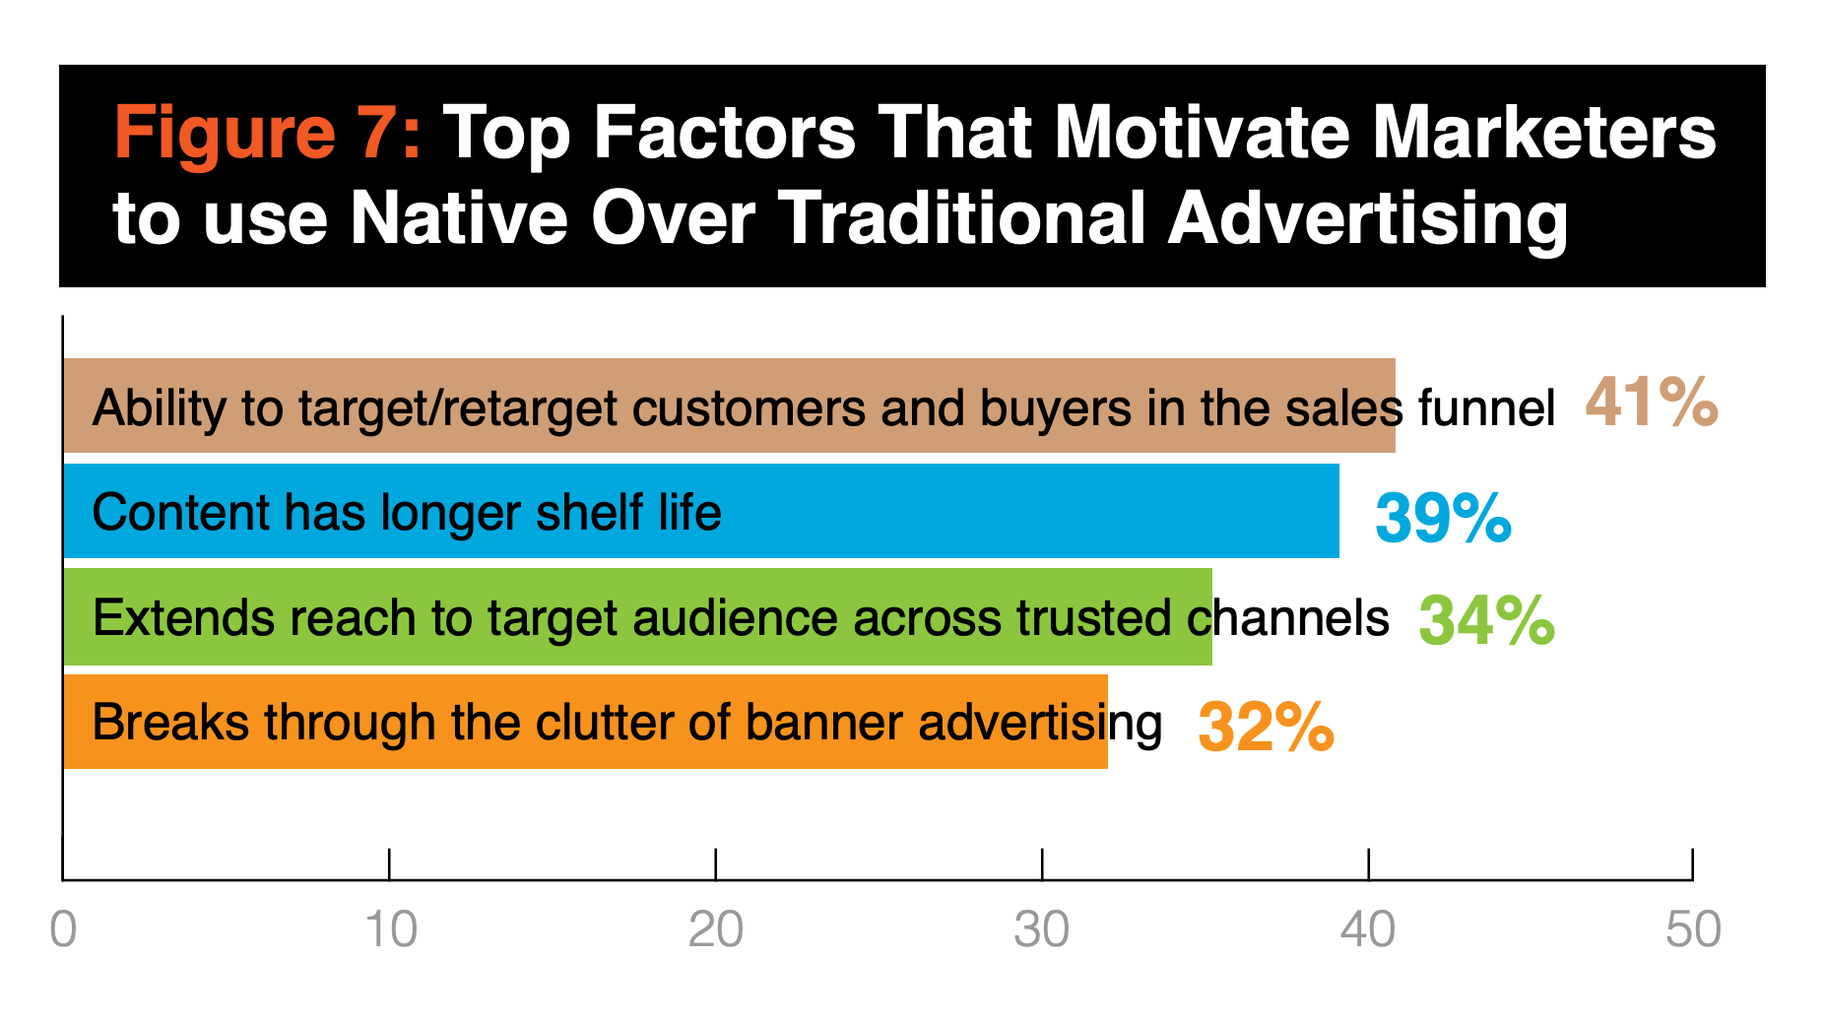 Native Advertising Motivators